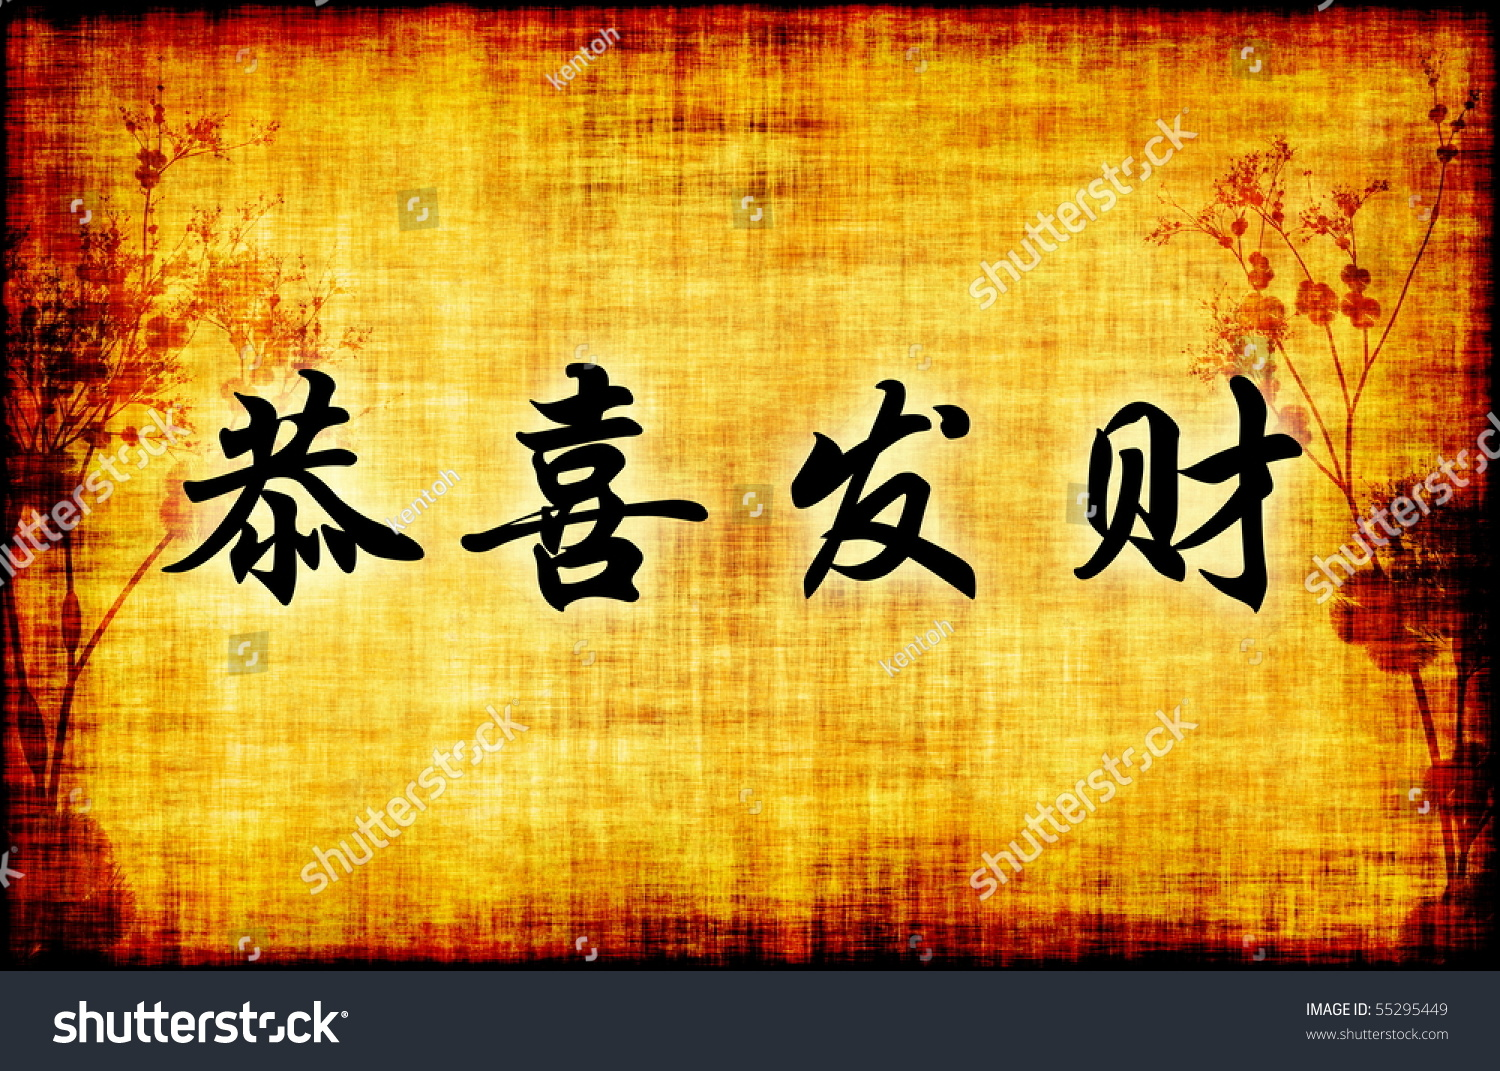 how to write gong xi fa cai in chinese